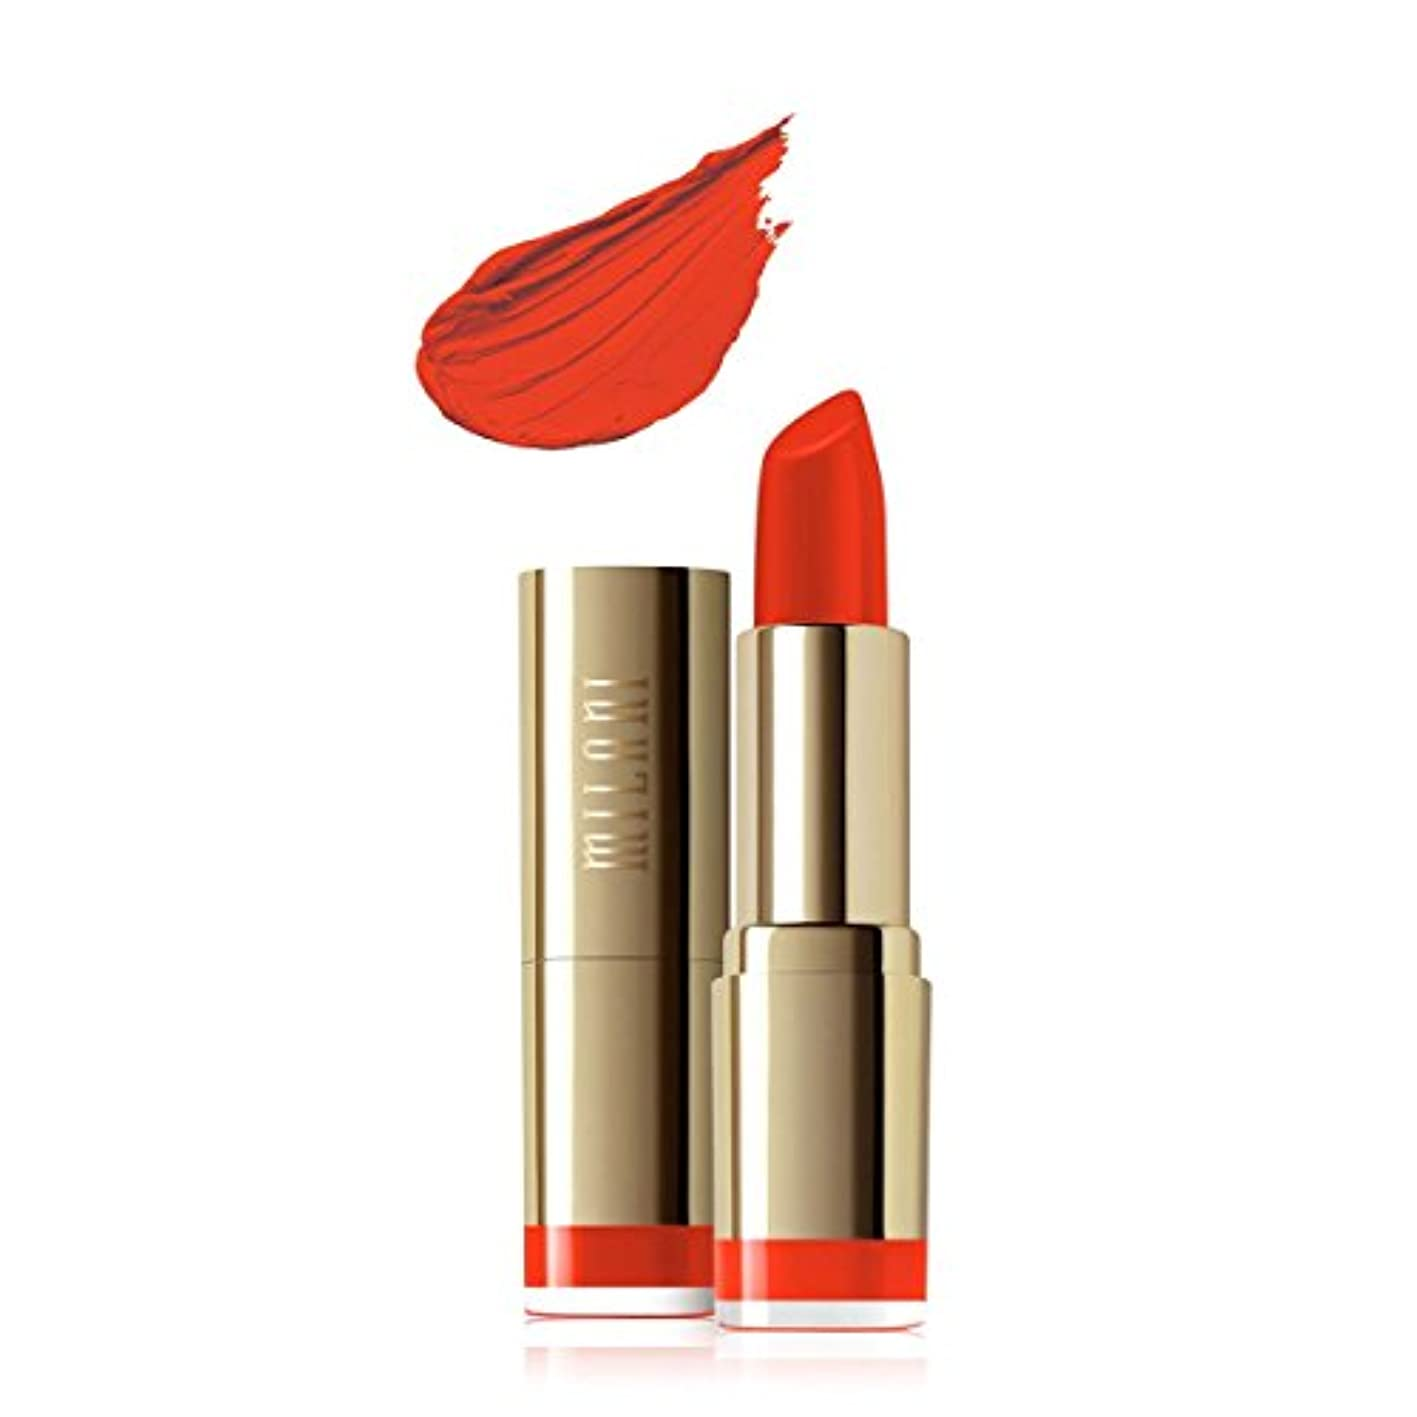 MILANI Color Statement Moisture Matte Lipstick - Matte Passion (Vegan) (並行輸入品)